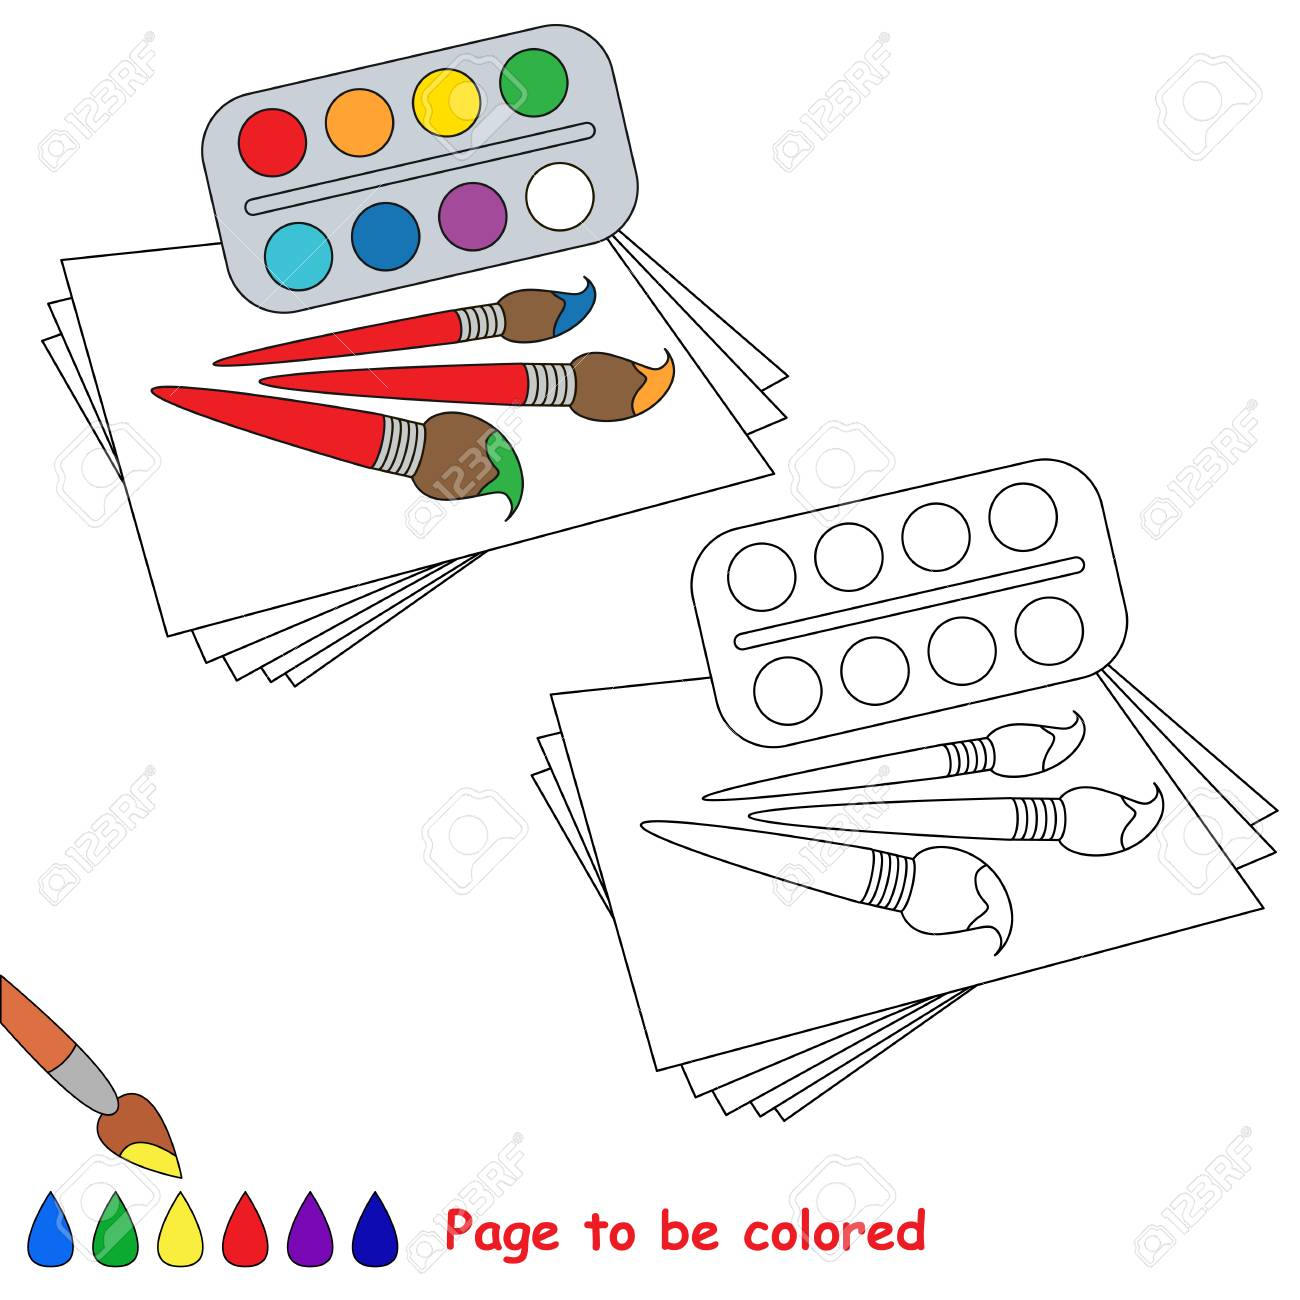 Watercolor Brushes And Paper To Be Colored The Coloring Book